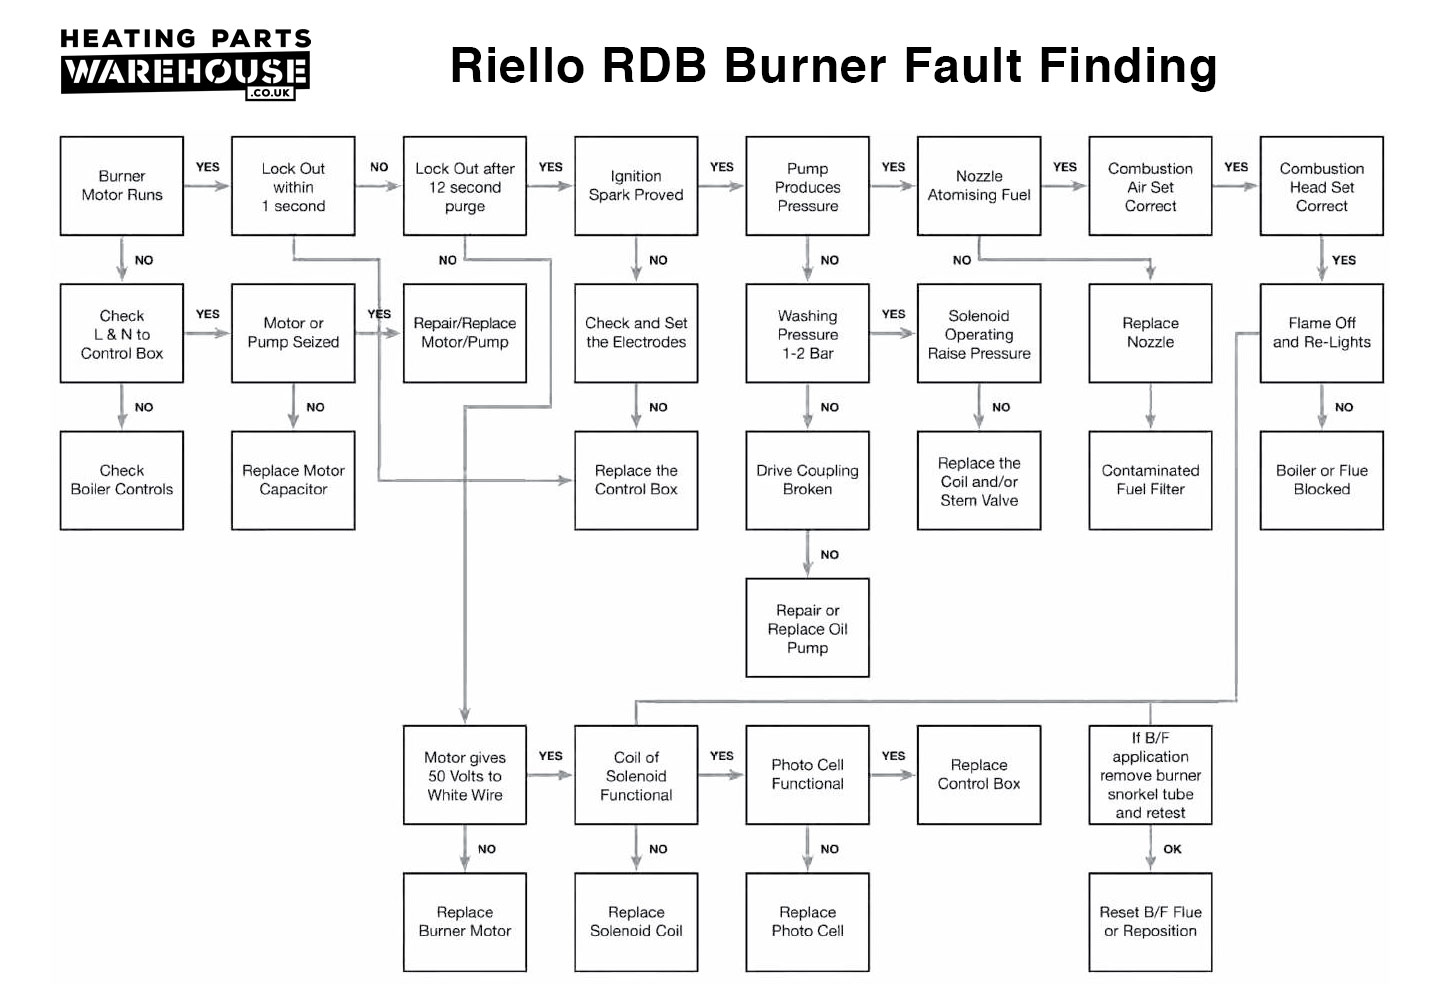 Riello RDB 4.2 Burner Fault Finding diagram